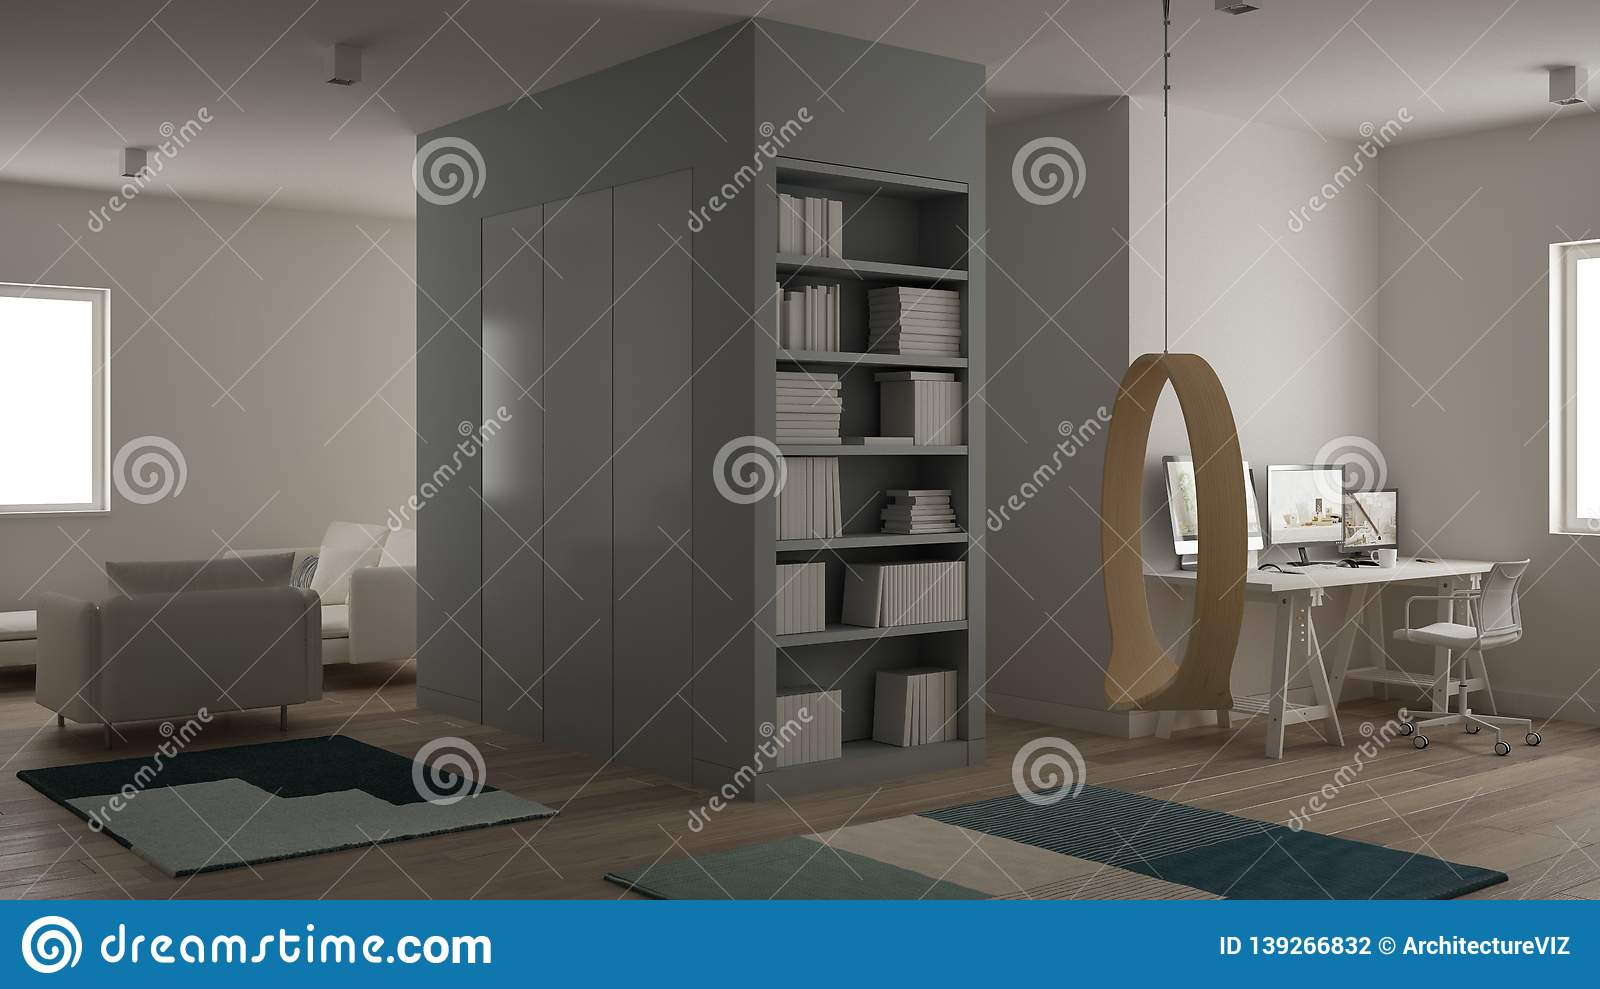 Small Apartment With Parquet Floor, Home Workplace With ...